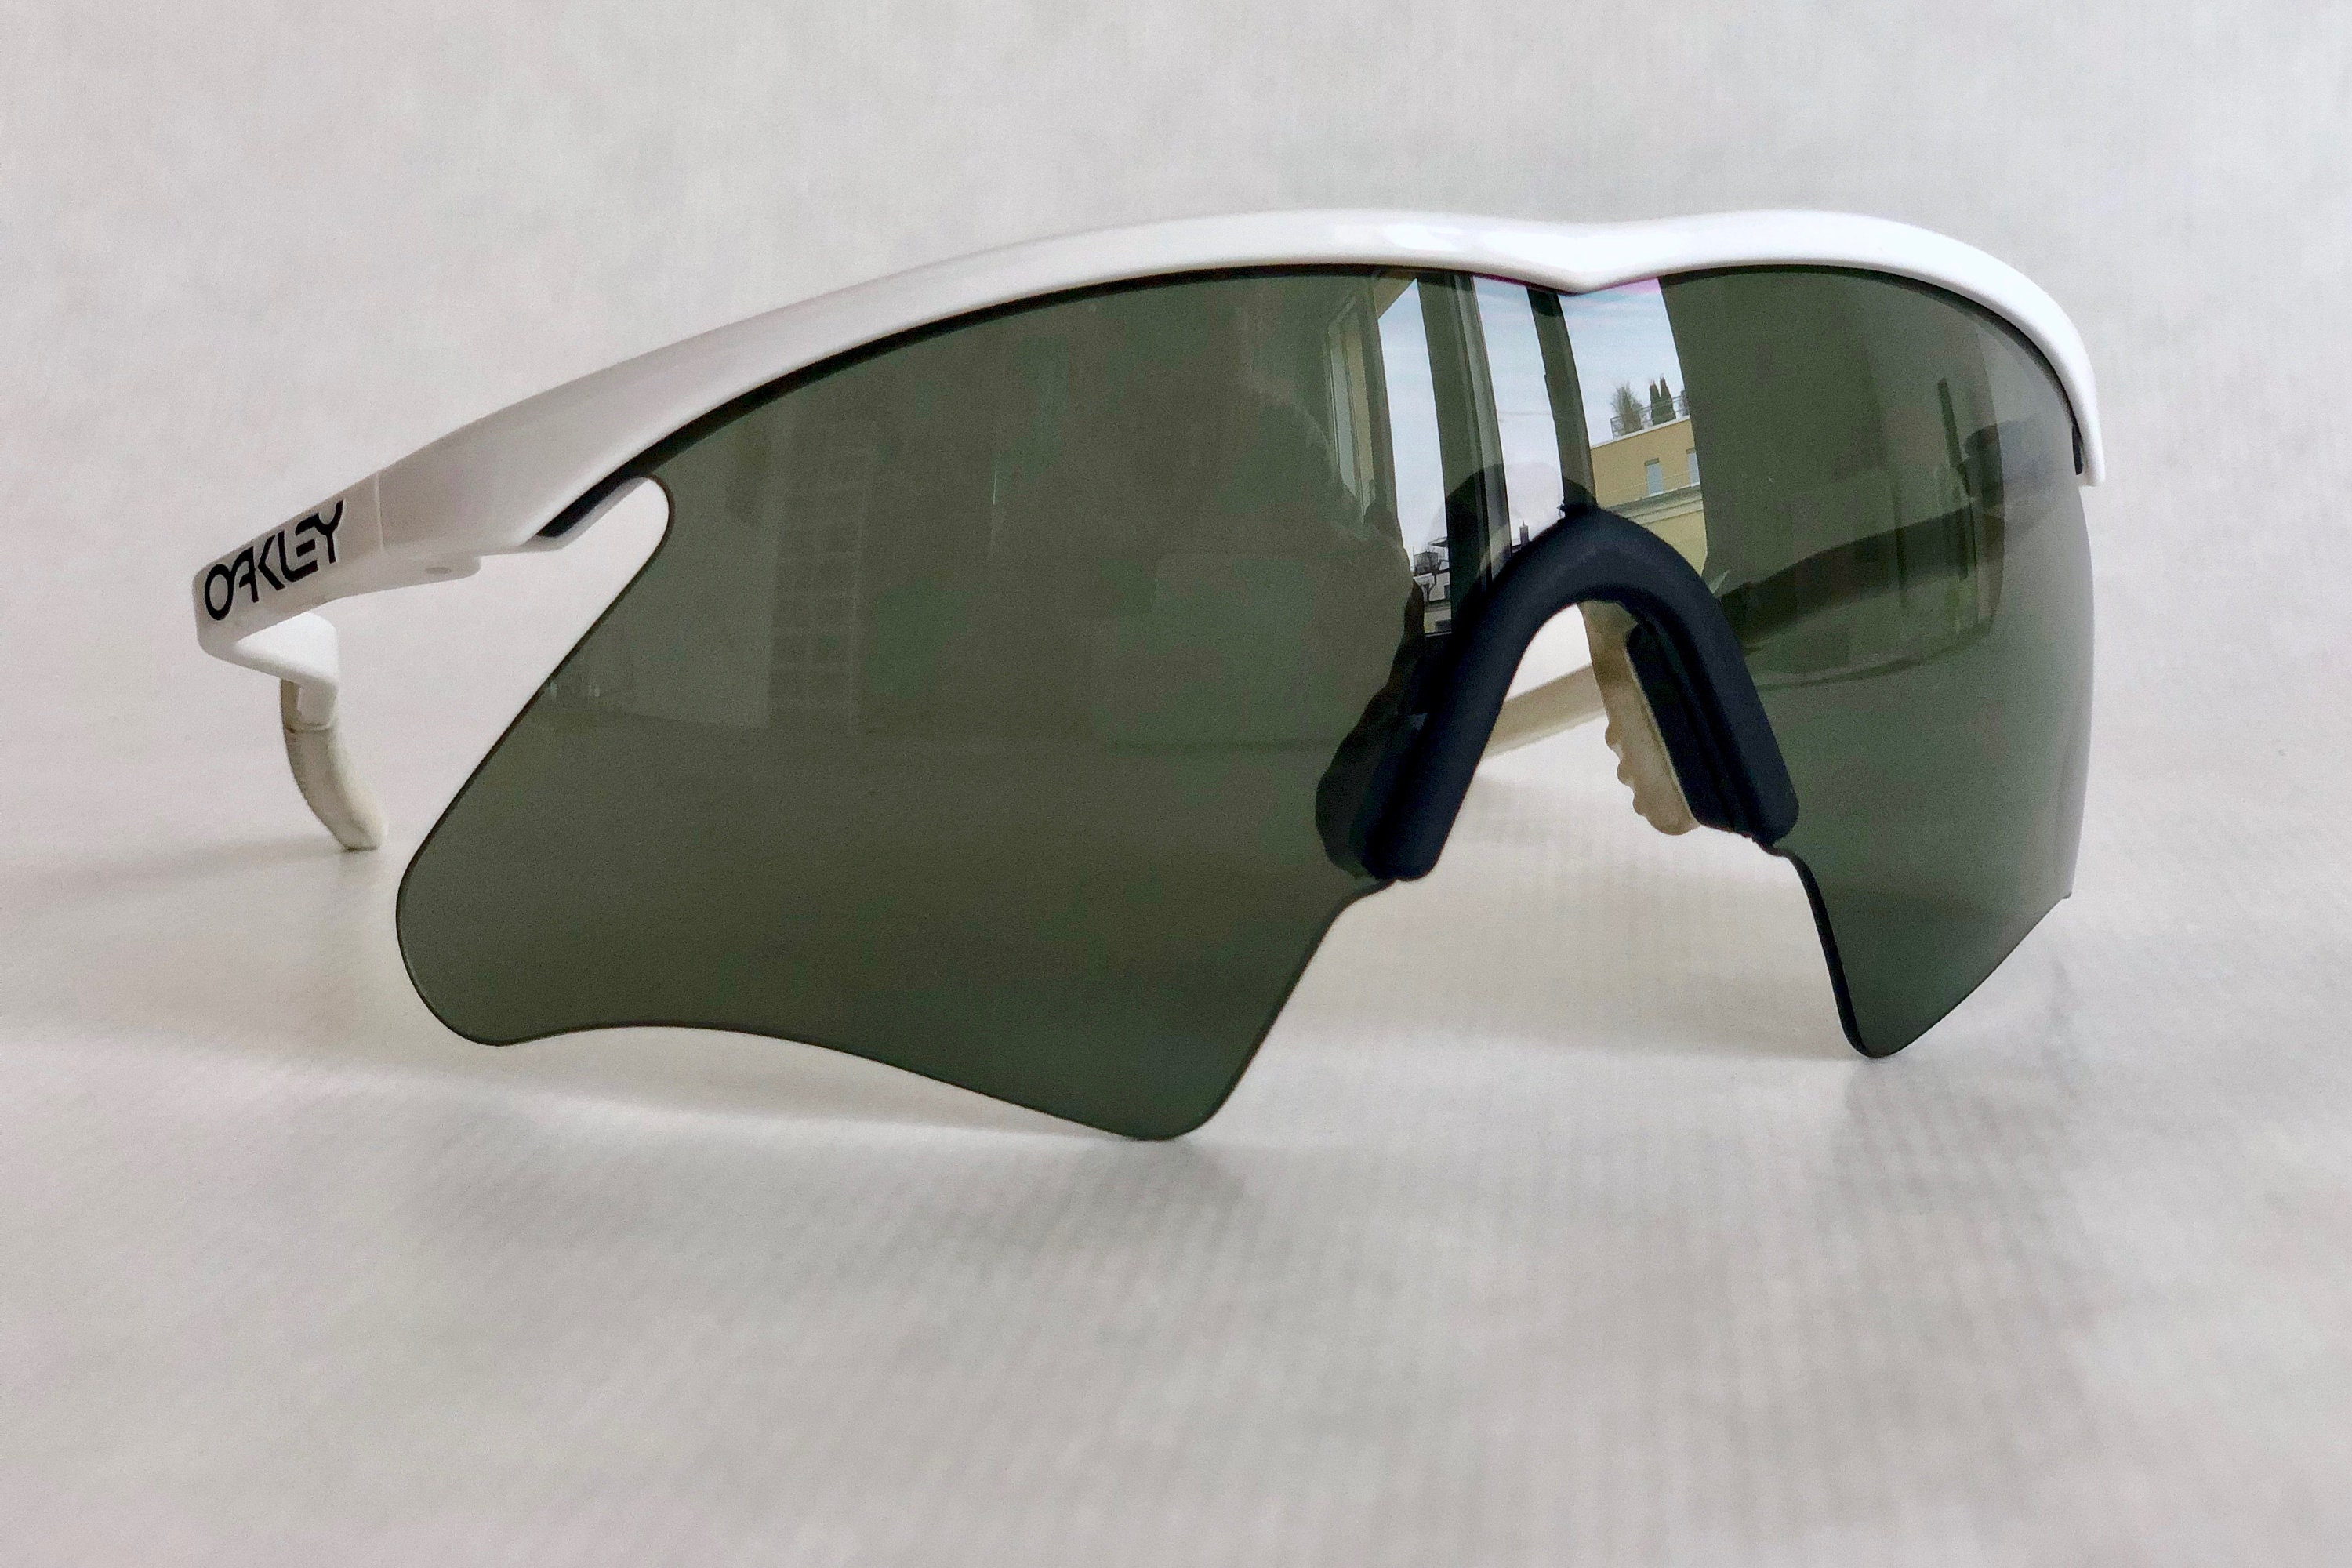 006c8ac627a Oakley M Frame Mumbo with Hammers 1990 Vintage Sunglasses – Full Set  Including Extra Nose Ear Kit – New Old Stock